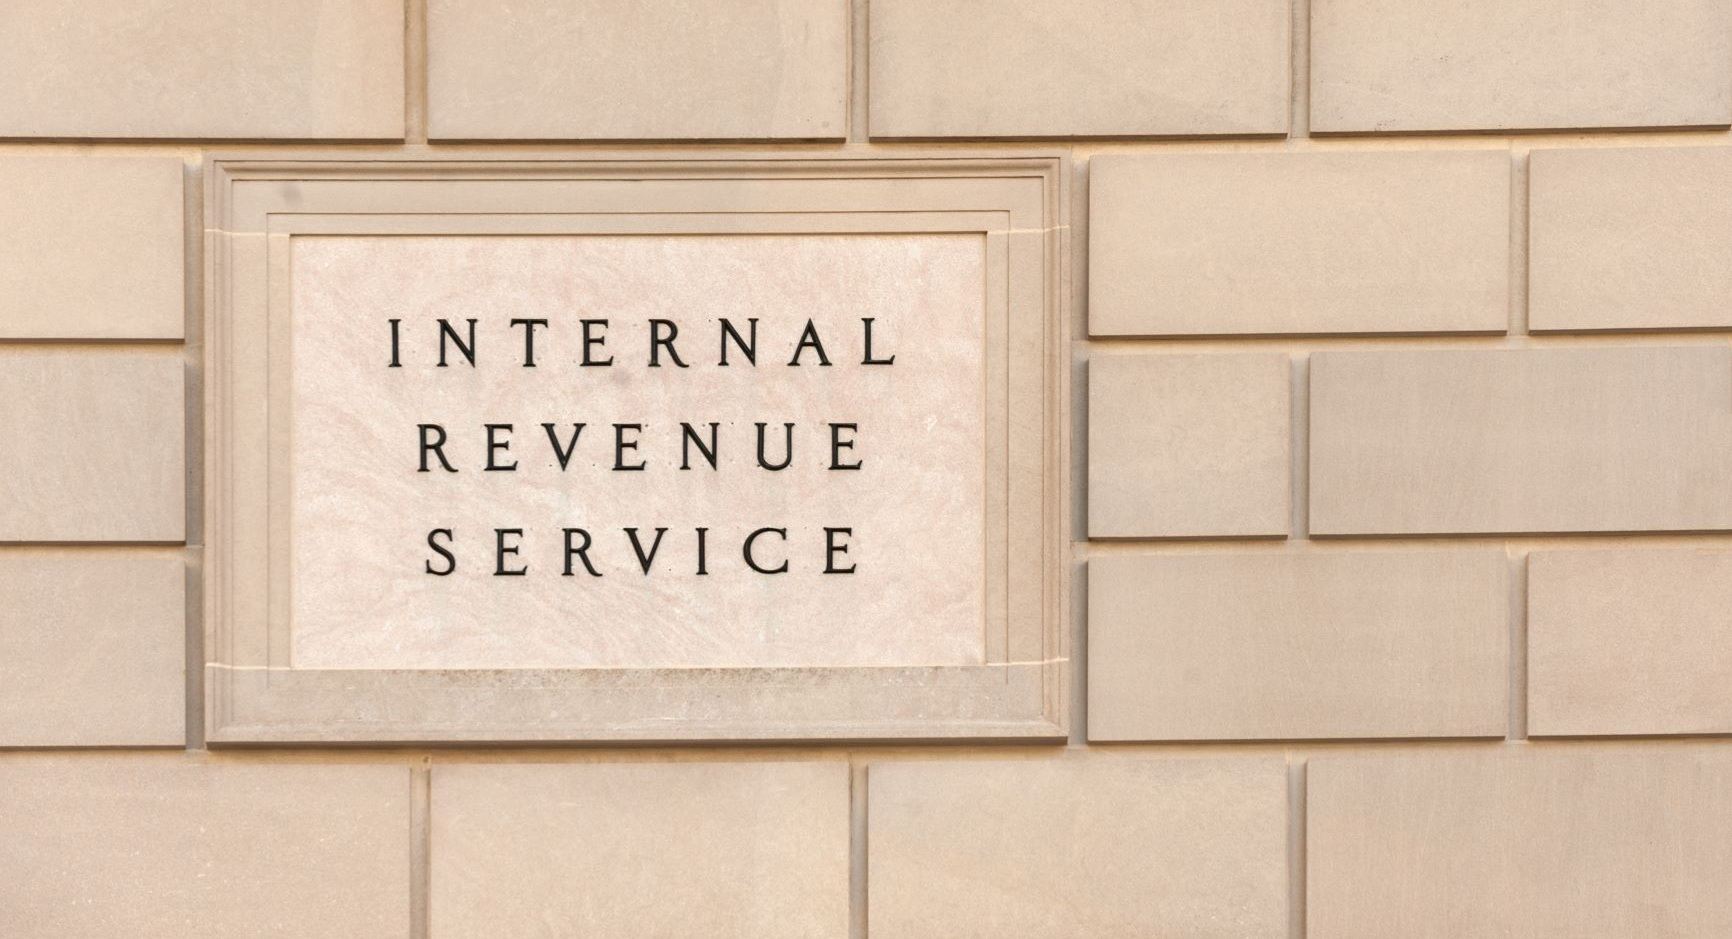 IRS+Building+Plaque-EMAIL+AdobeStock_131610852.jpg